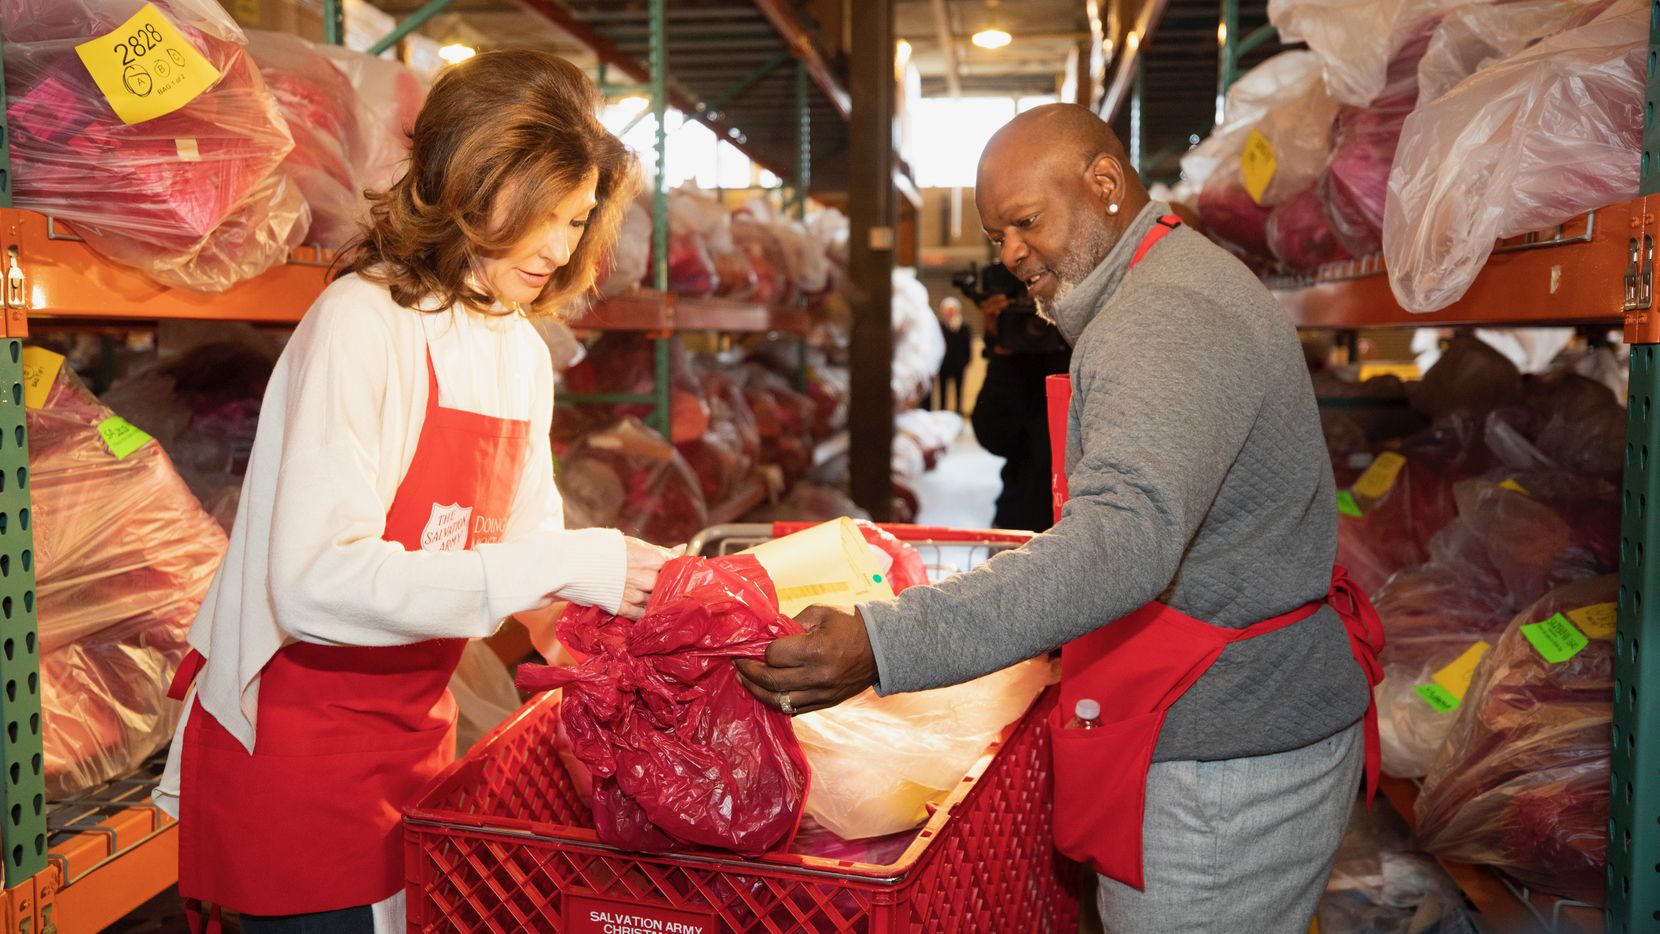 Charlotte Jones was joined by Dallas Cowboys Legend Emmitt Smith in sorting and distributing Salvation Army Angel Tree gifts for families in need at the nonprofit's Christmas Assistance Center in Dallas last December.